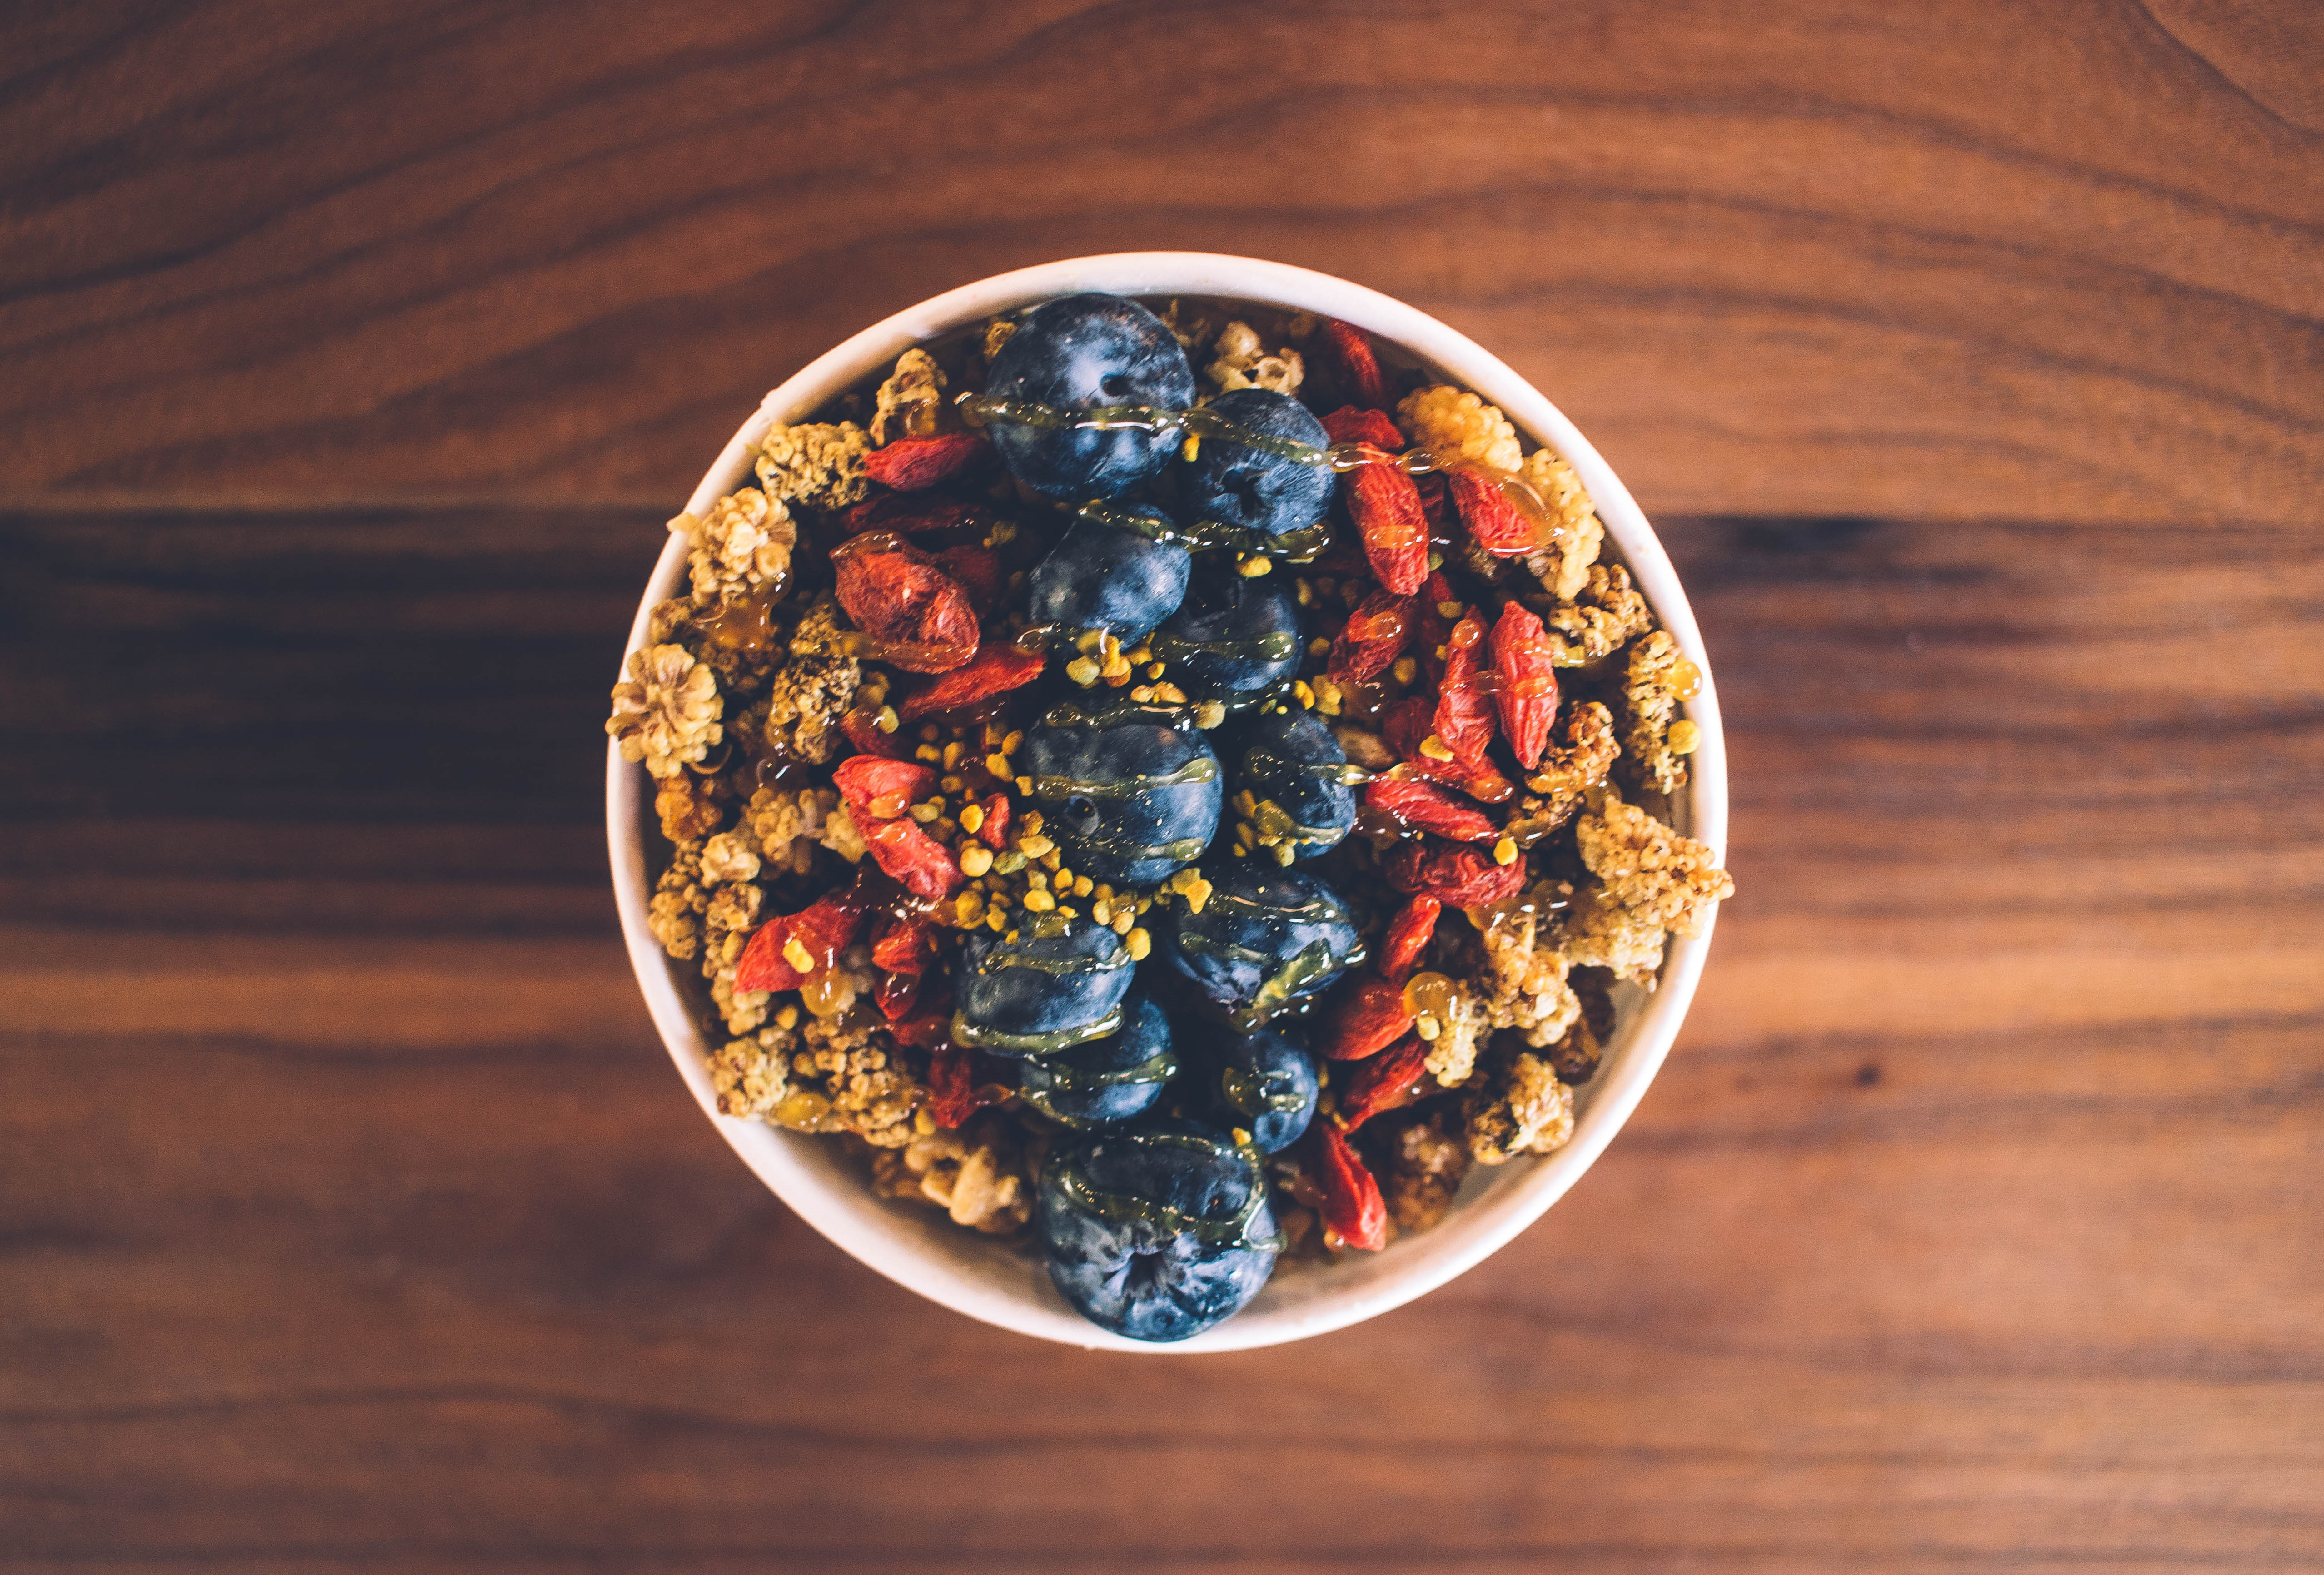 Check out FIT BAR's Admiral Bowl, packed with mulberries, goji berries, blueberries, flax seeds, hemp hearts and bee pollen. (Credit: Gabe Lewis)<p></p>